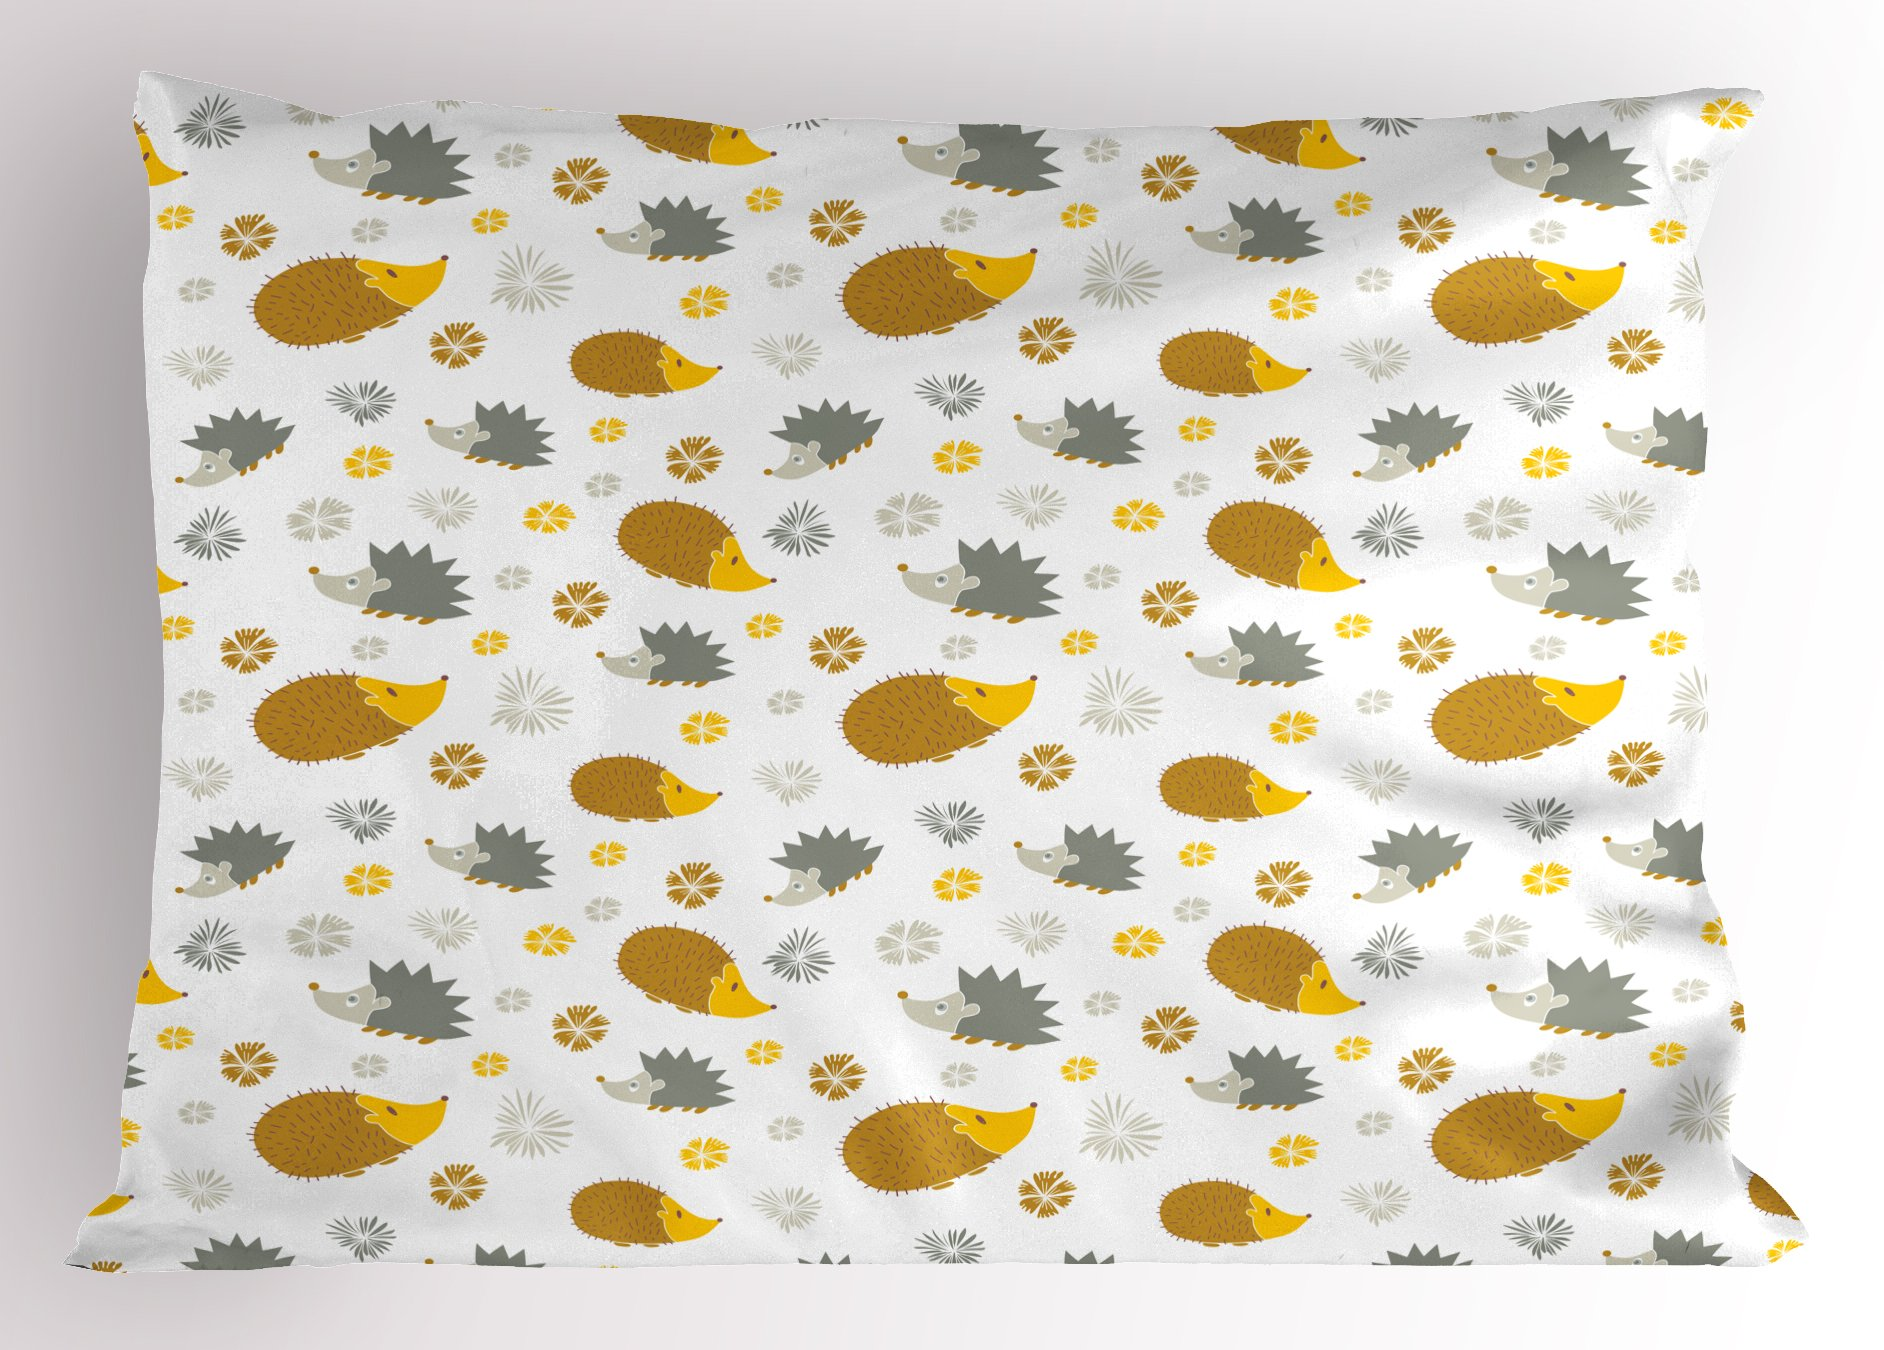 Ambesonne Hedgehog Pillow Sham, Autumn in Woods Theme Different Wildlife Mascots with Little Flowers, Decorative Standard Size Printed Pillowcase, 26 X 20 inches, Earth Yellow and Grey